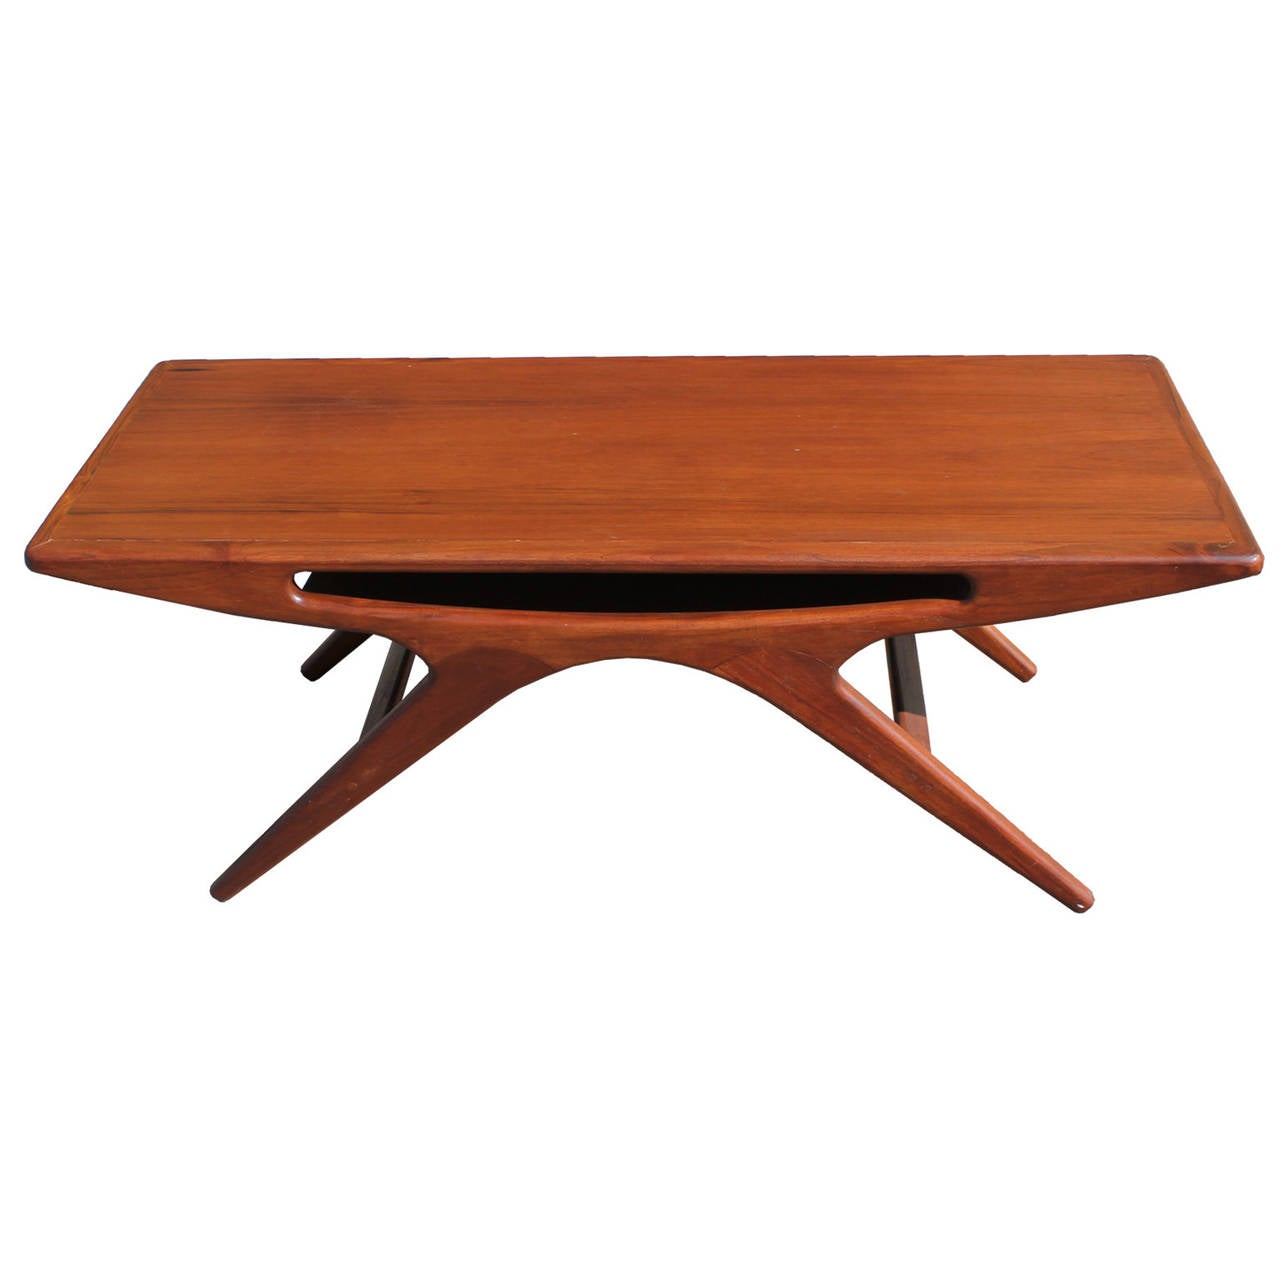 Sculptural Coffee Tables Sculptural Teak Coffee Table By Johannes Andersen At 1stdibs